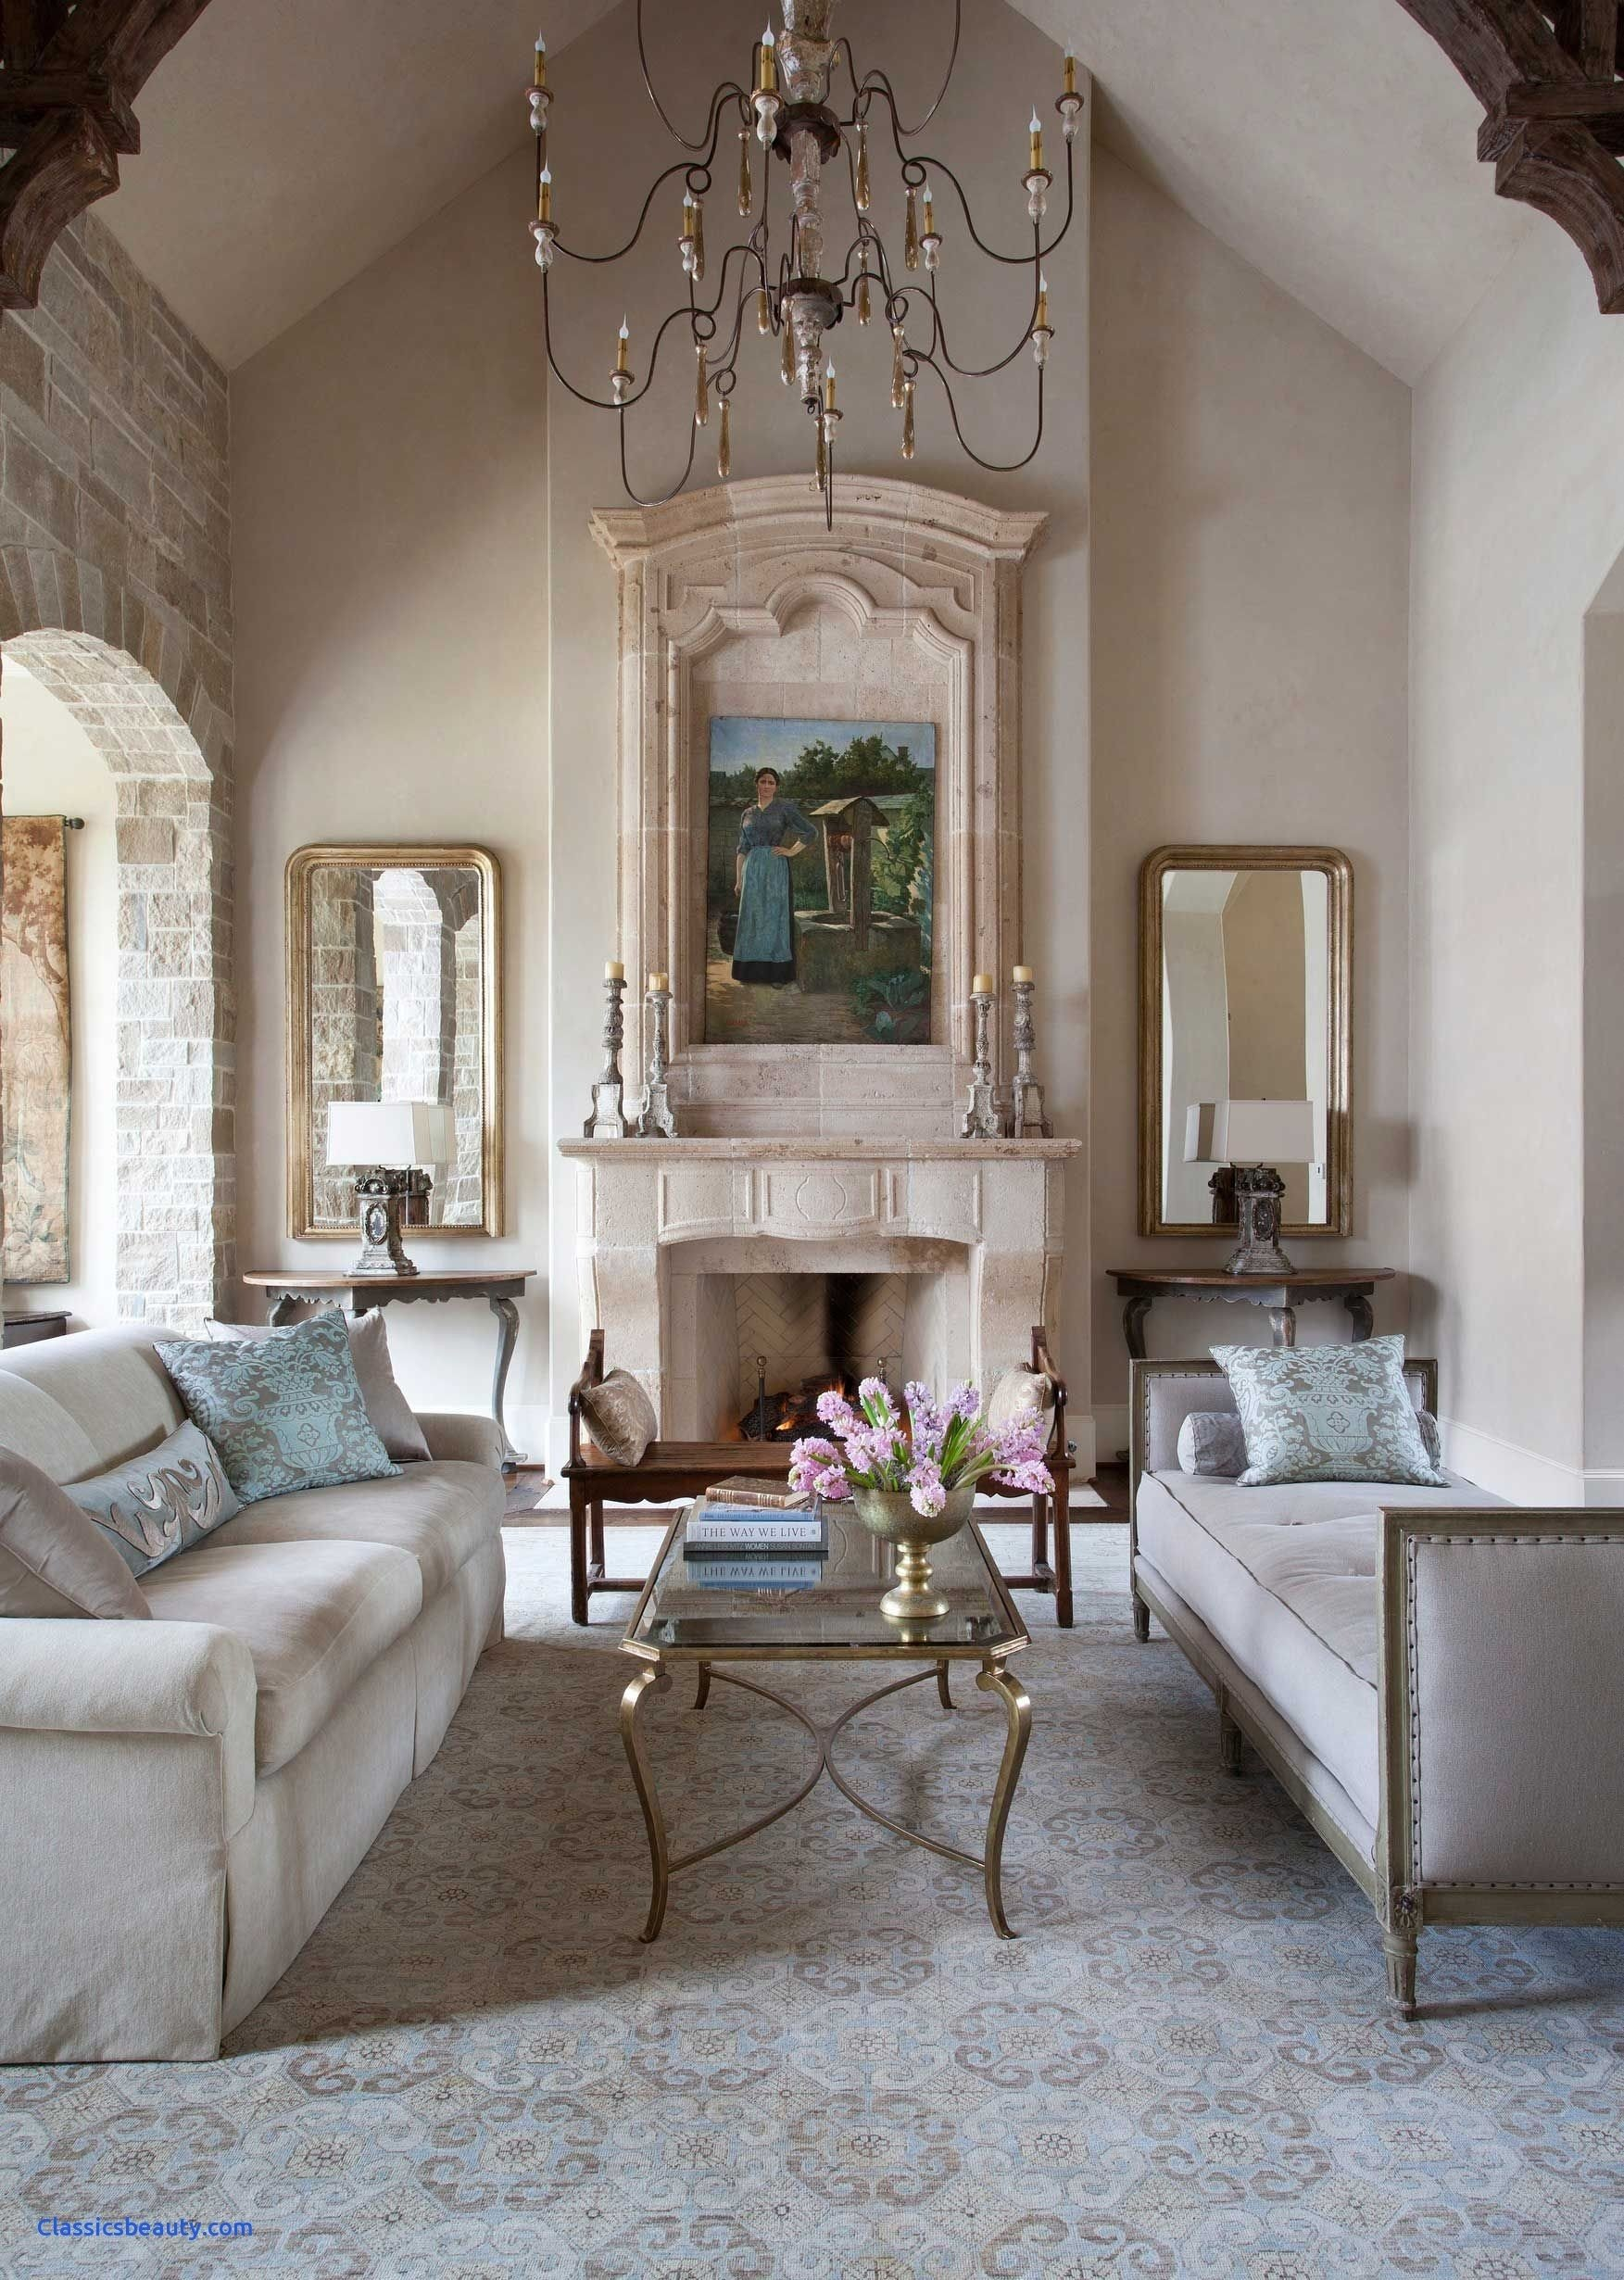 10 Pretty French Country Cottage Decorating Ideas living room french country decorating ideas for living room 1 2020